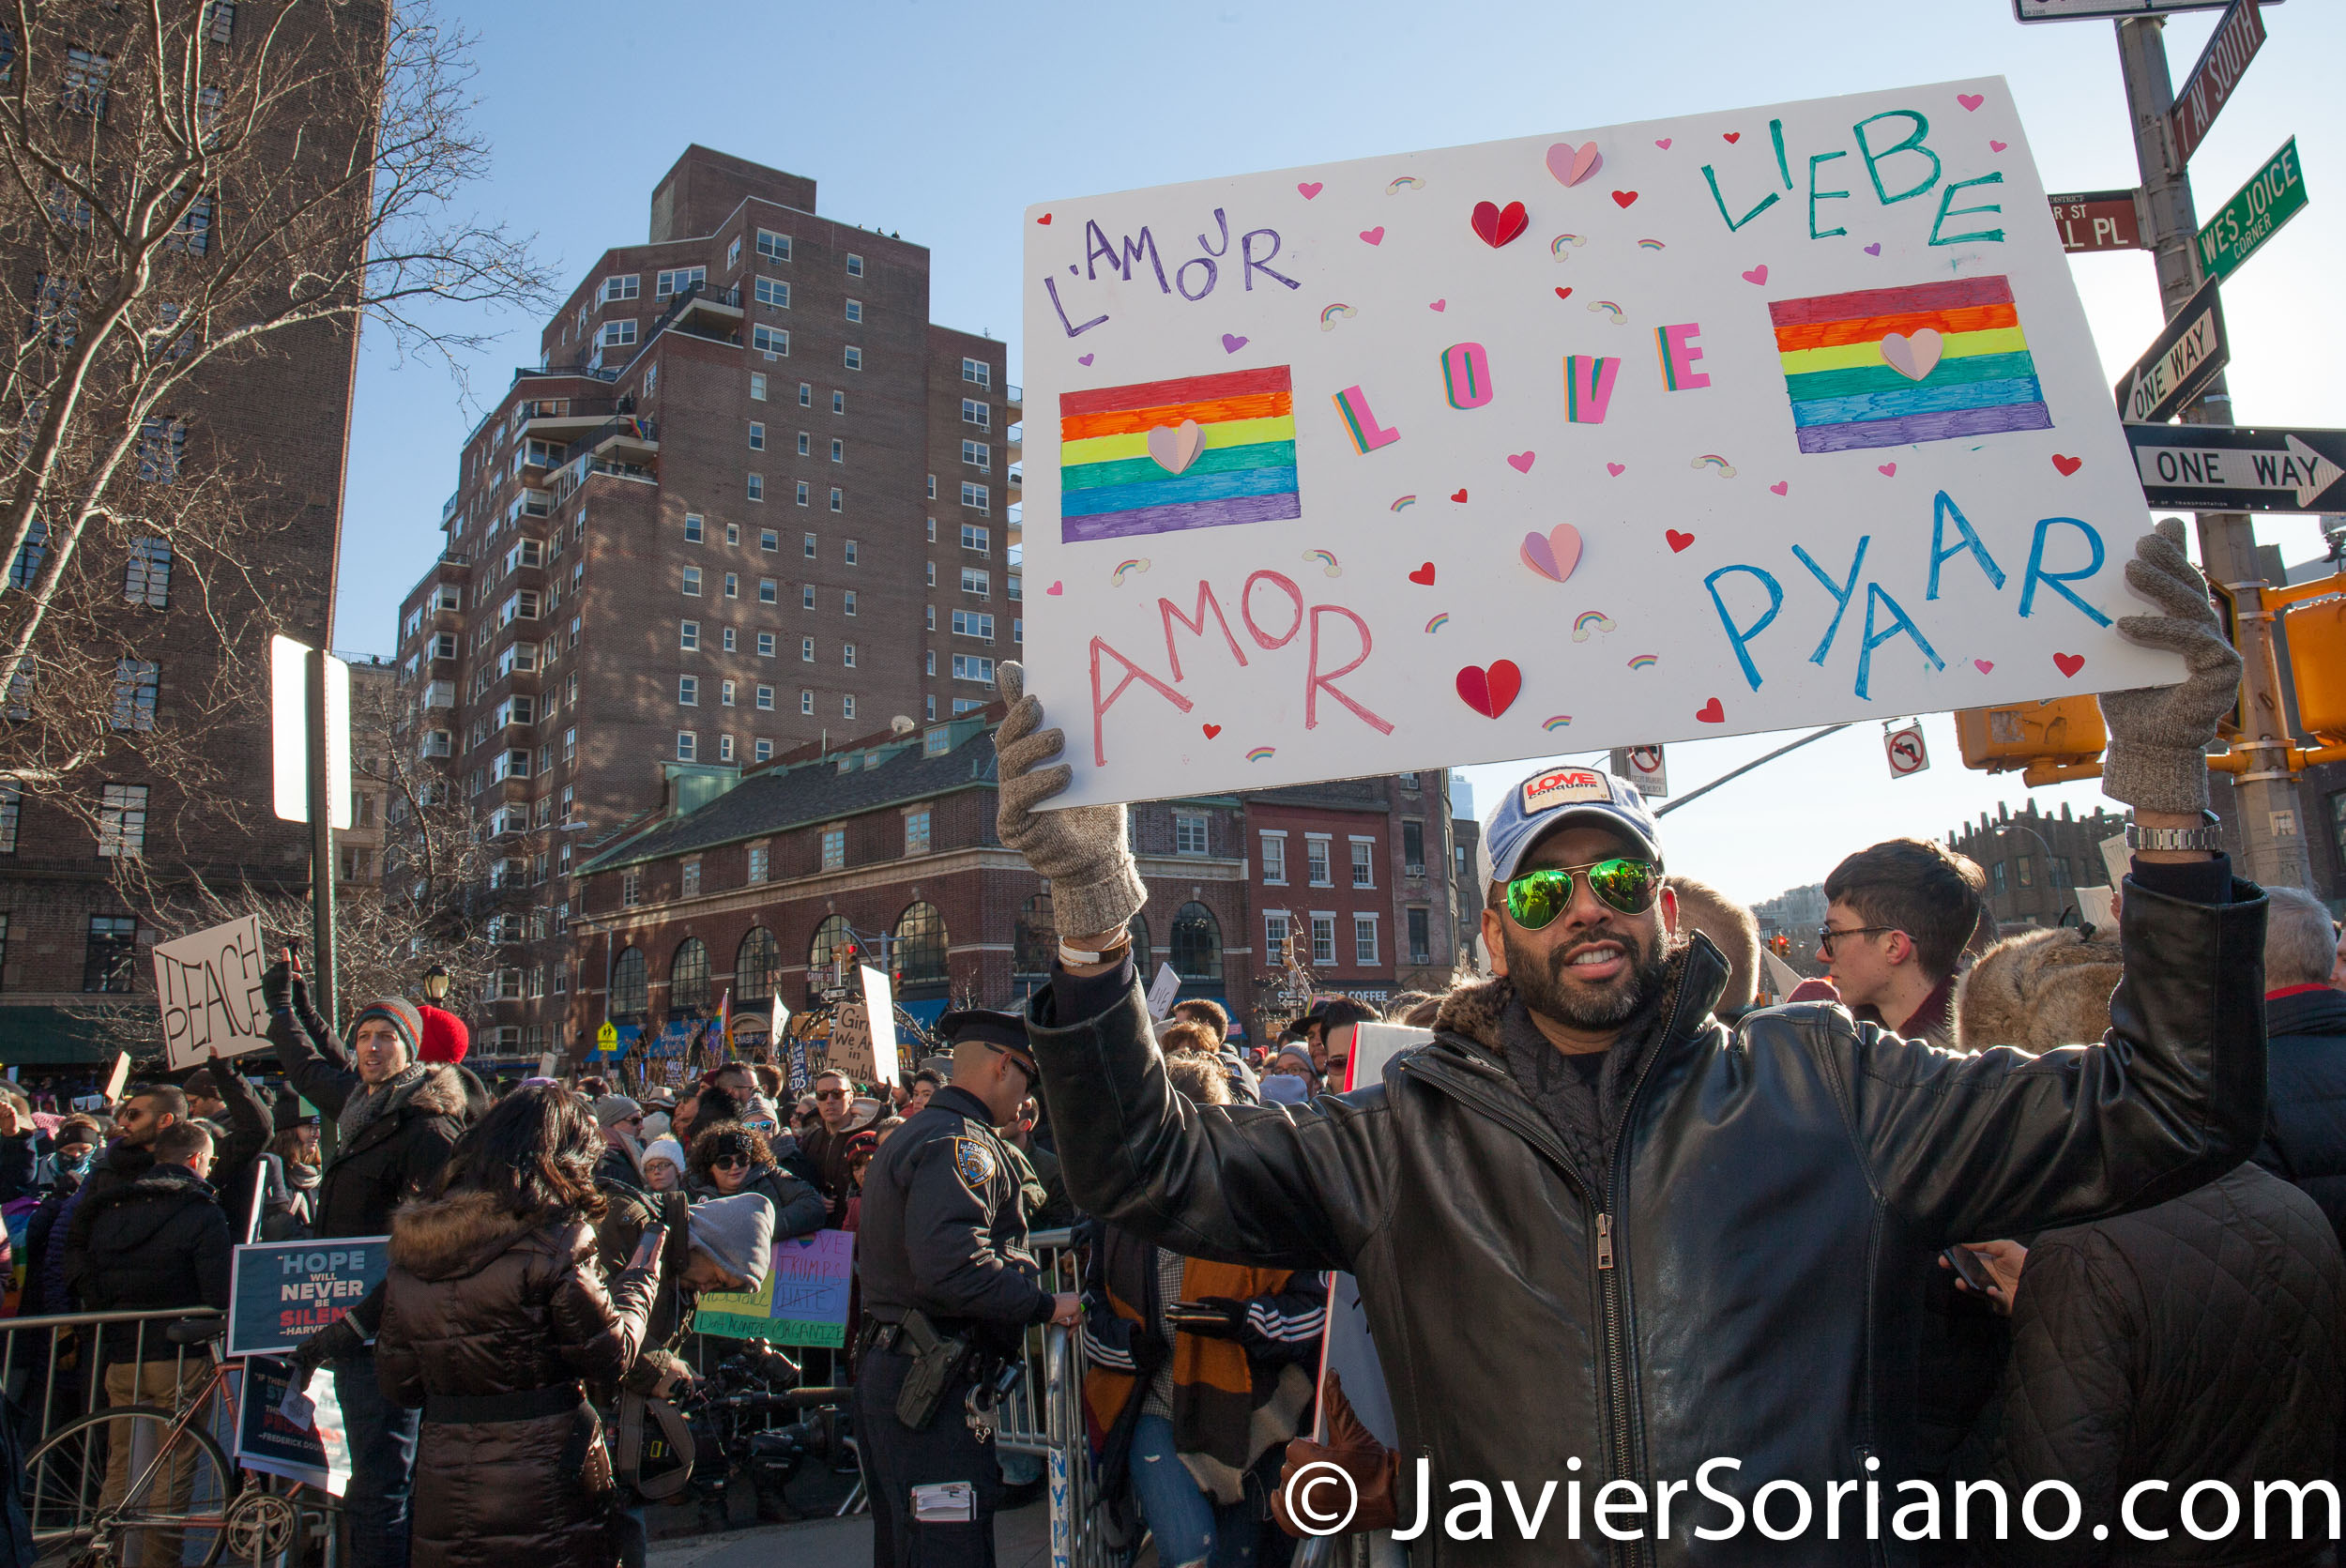 2/4/2017 NYC – LGBT Solidarity Rally at Stonewall Inn in support of immigrants, refugees, Muslims, ALL. Photo by Javier Soriano/www.JavierSoriano.com